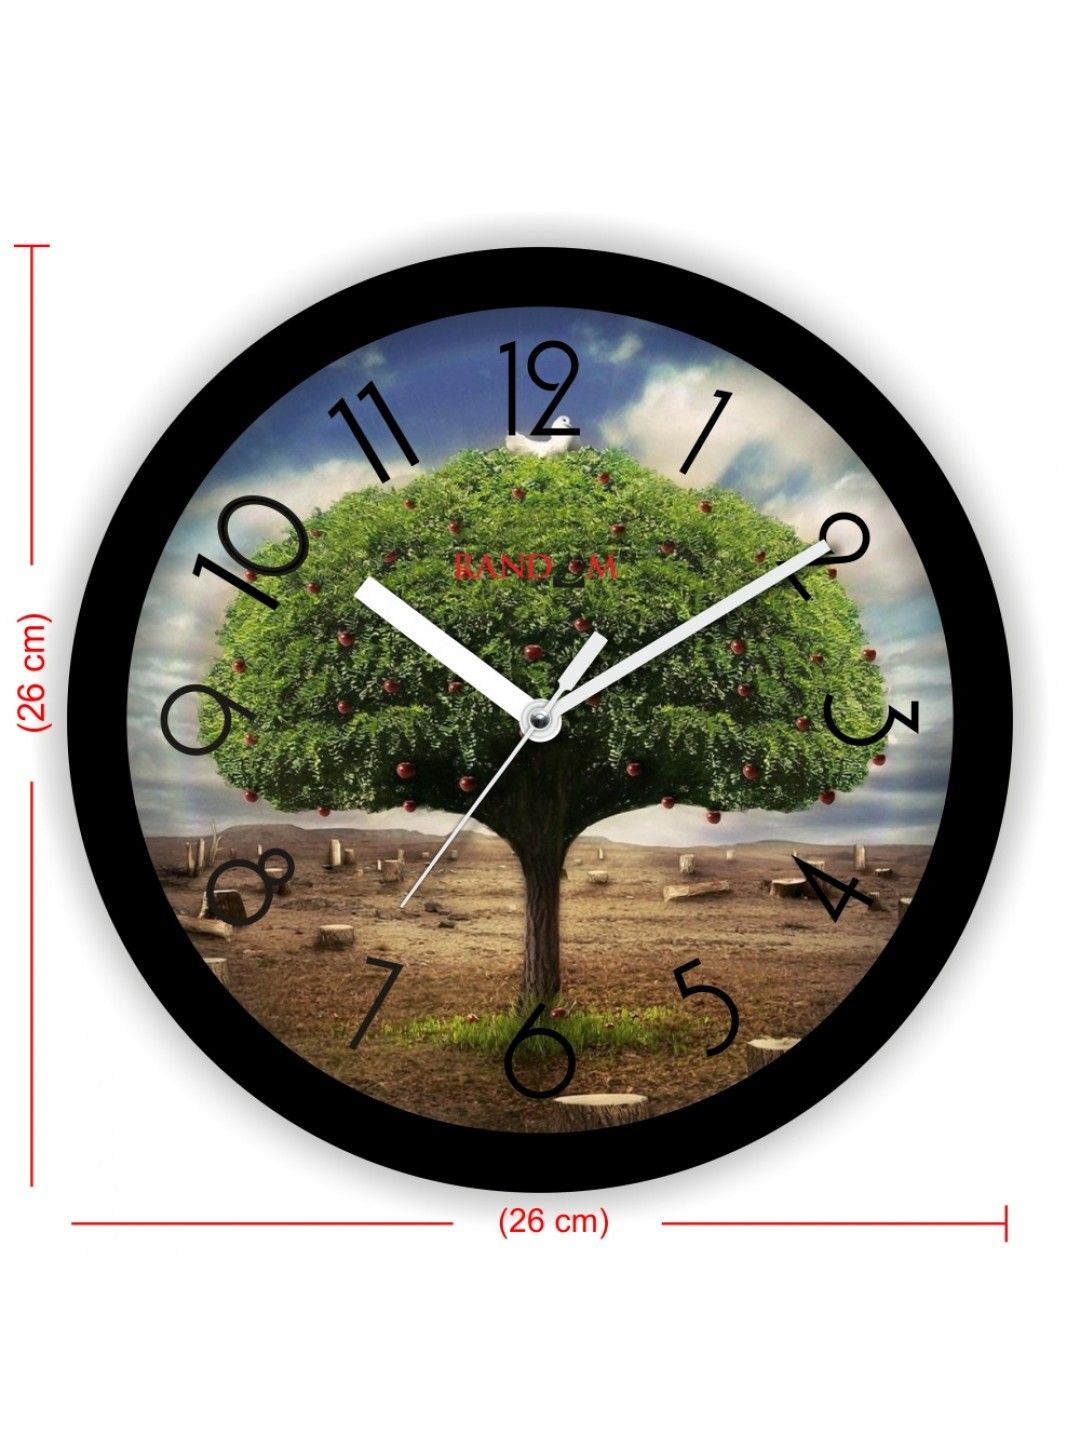 Colorful Wooden Designer Analog Wall Clock Rc 2012